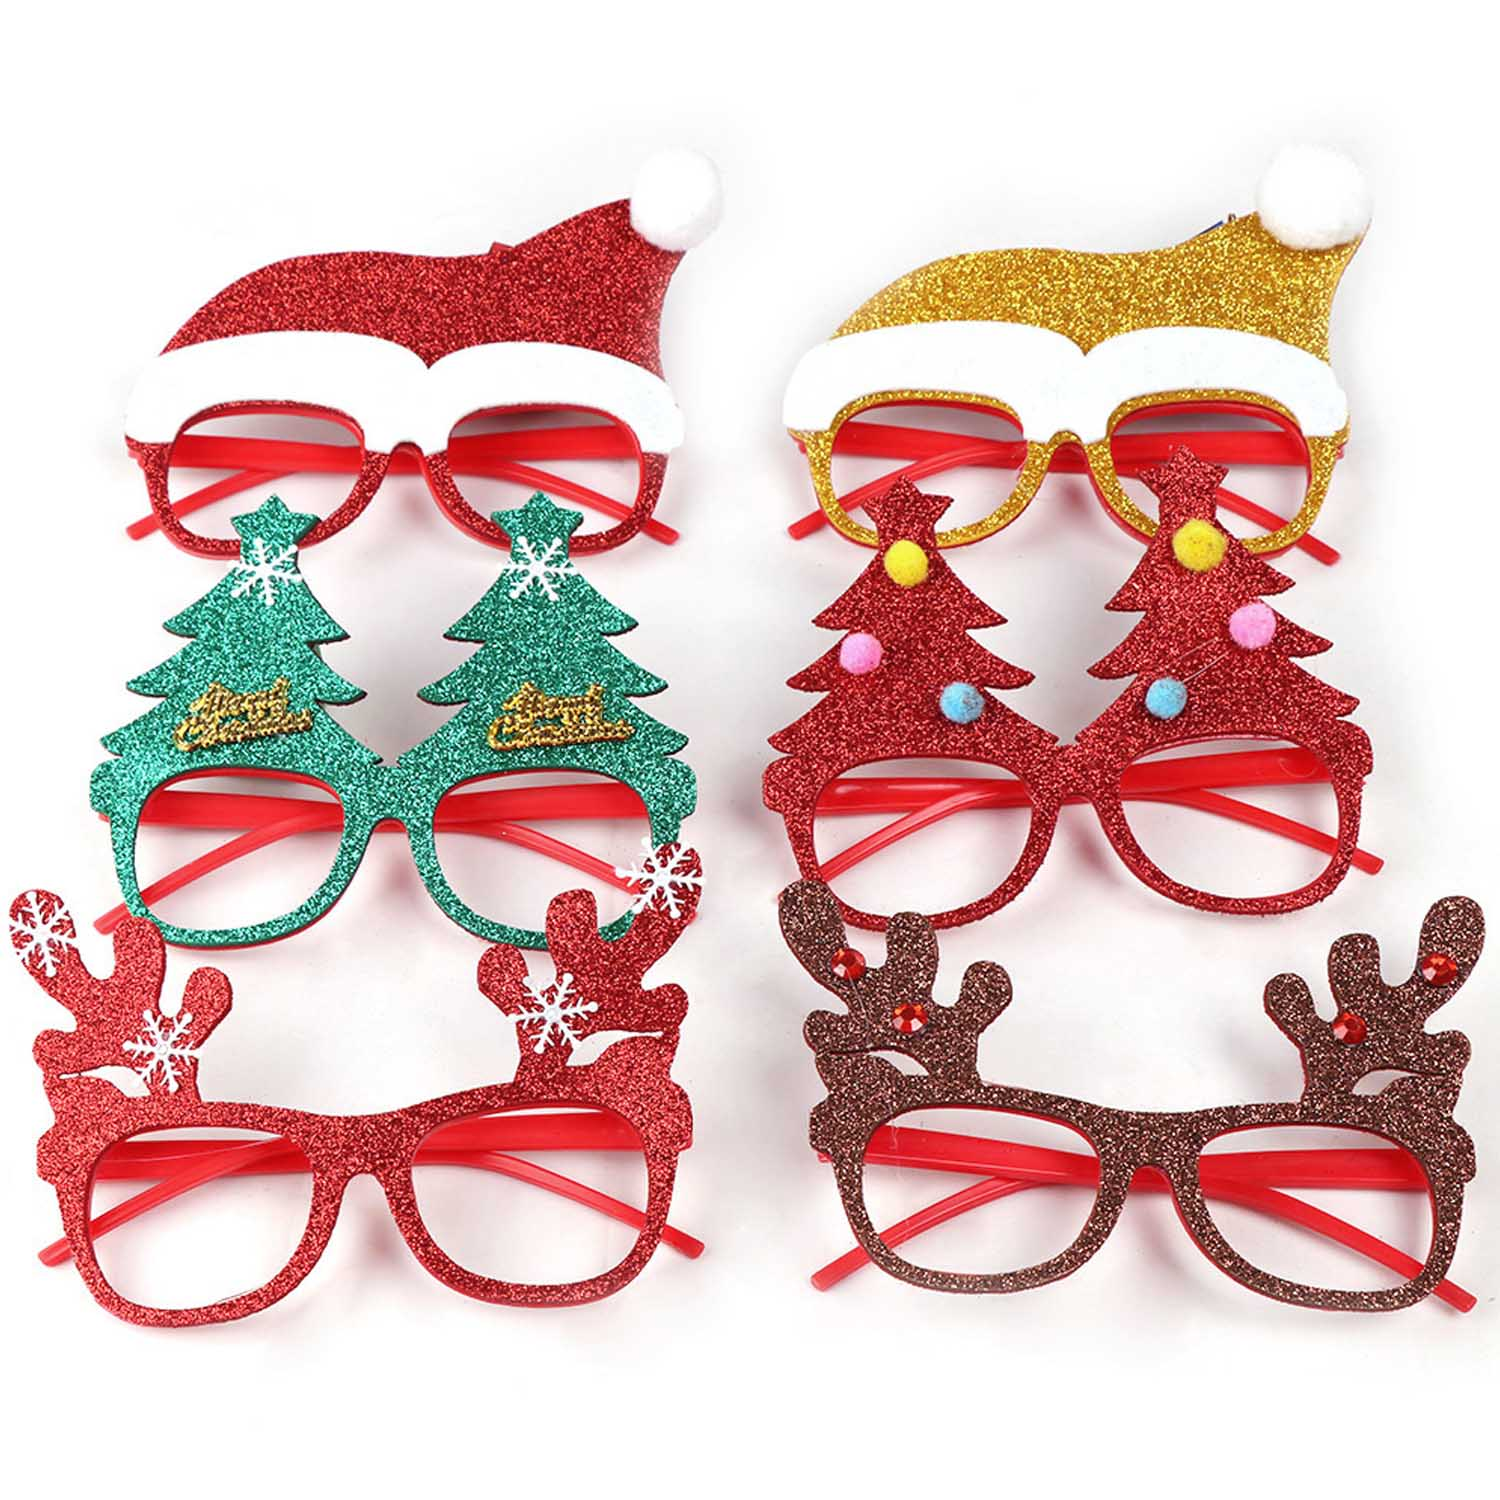 Besegad 6pcs Cute Funny Christmas Glitter Eyeglasses Glasses Frame Xmas Holiday Costume Party Favors Decoration Supplies